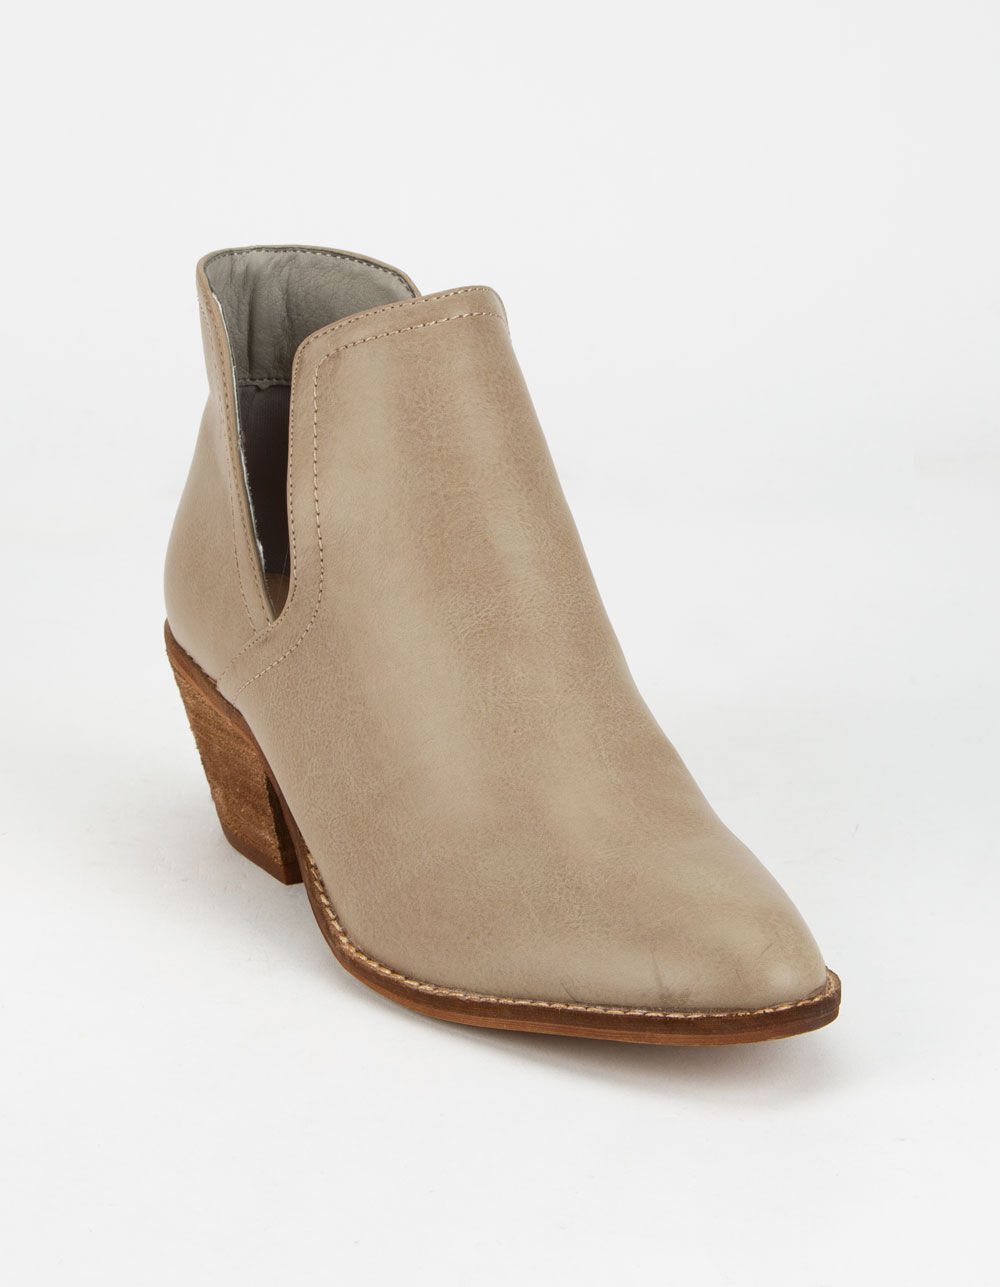 BEAST FASHION Chop Out Gray Booties